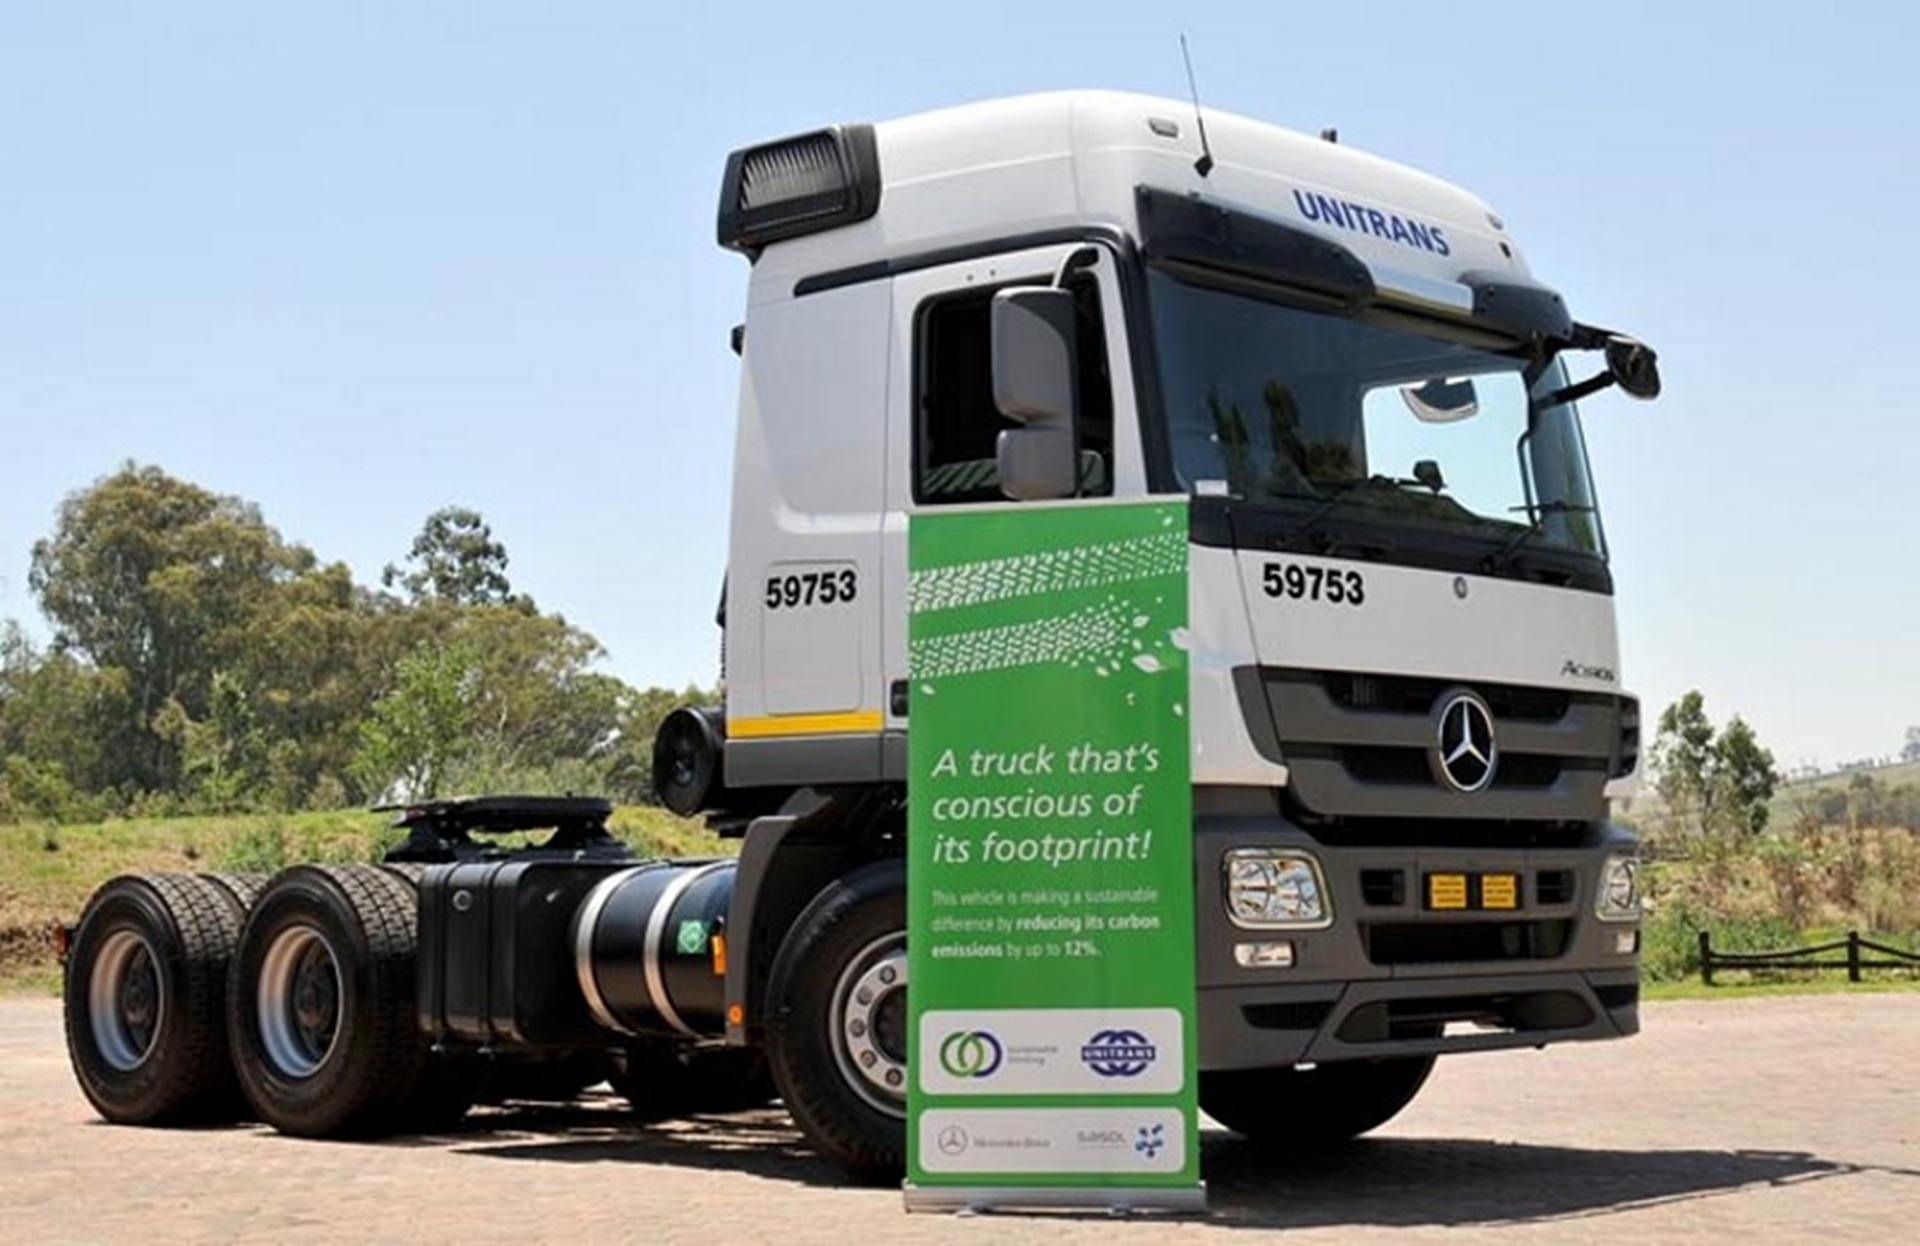 mercedes-benz-truck-green-fuel-truck